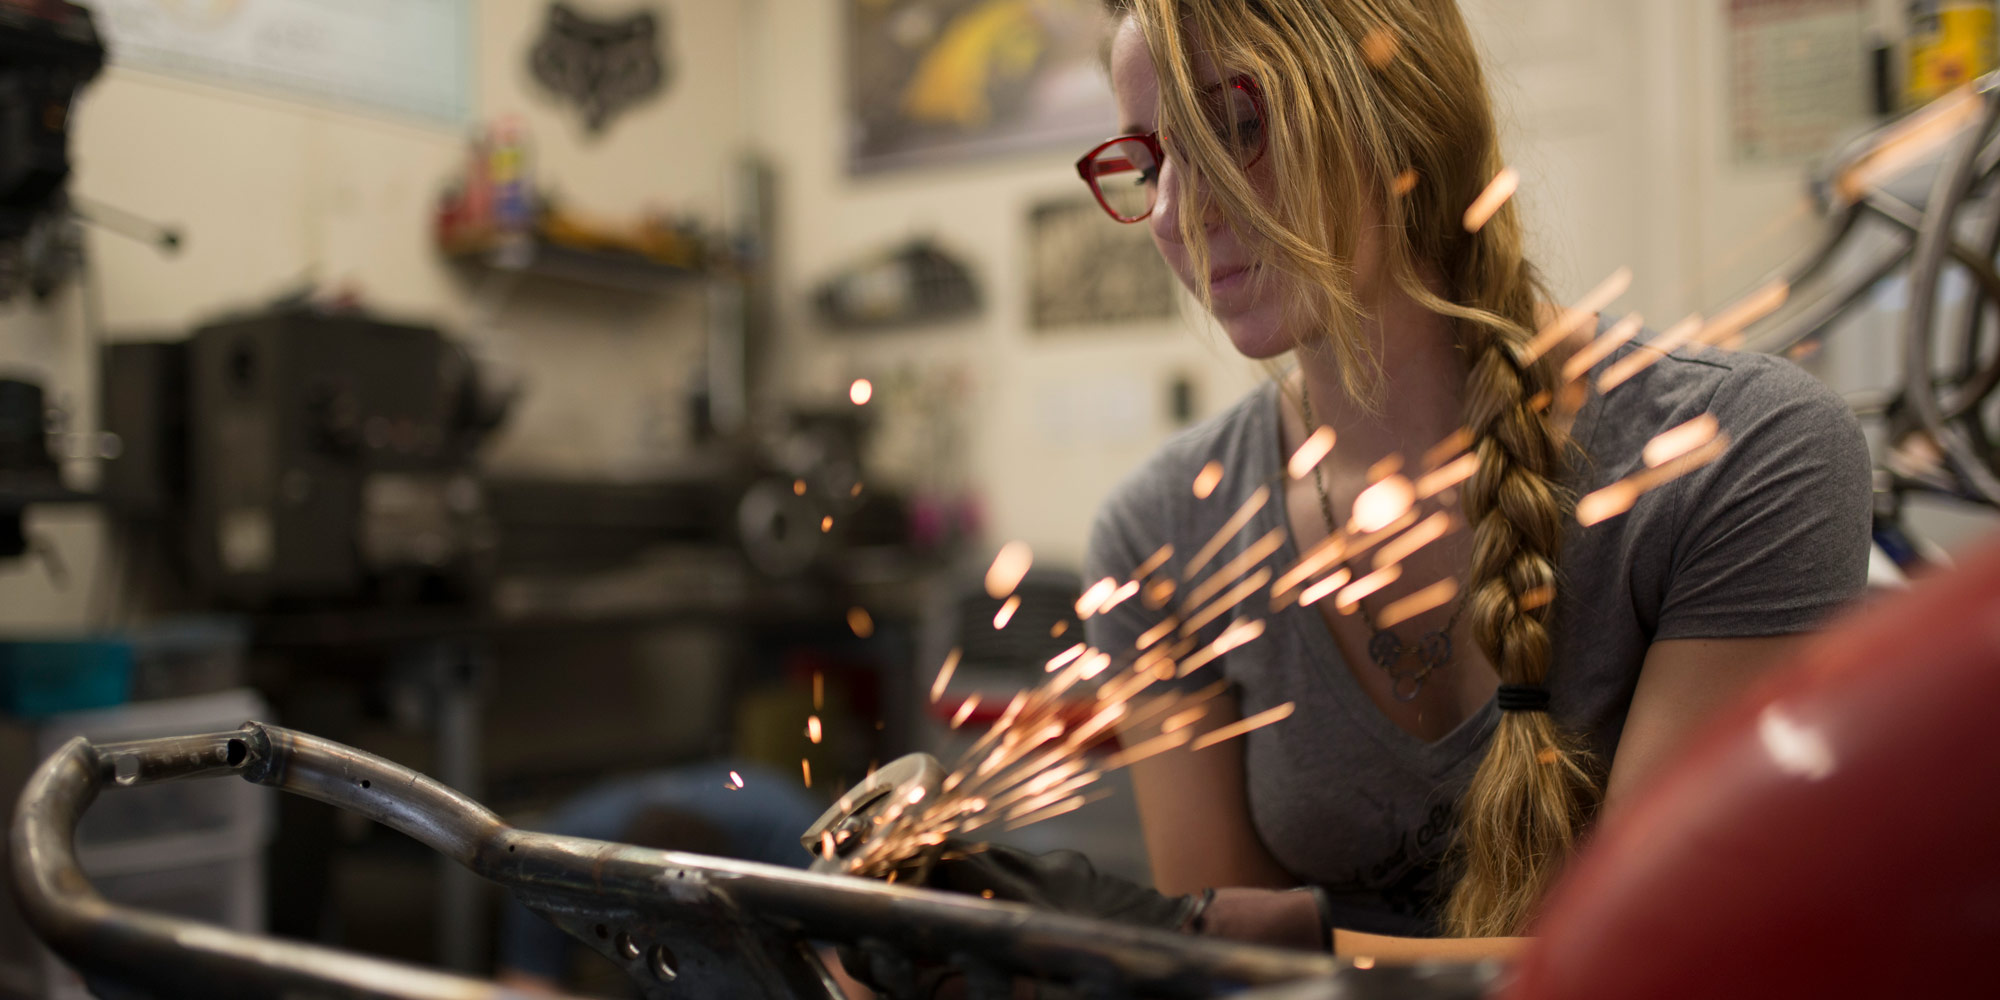 woman working on motorcycle with welding sparks flying